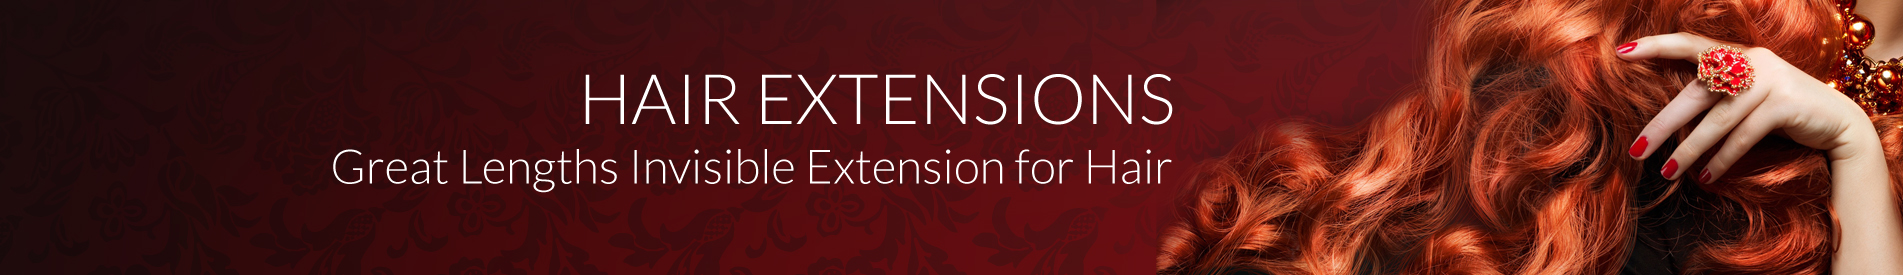 Hair Extensions Salon in Miami